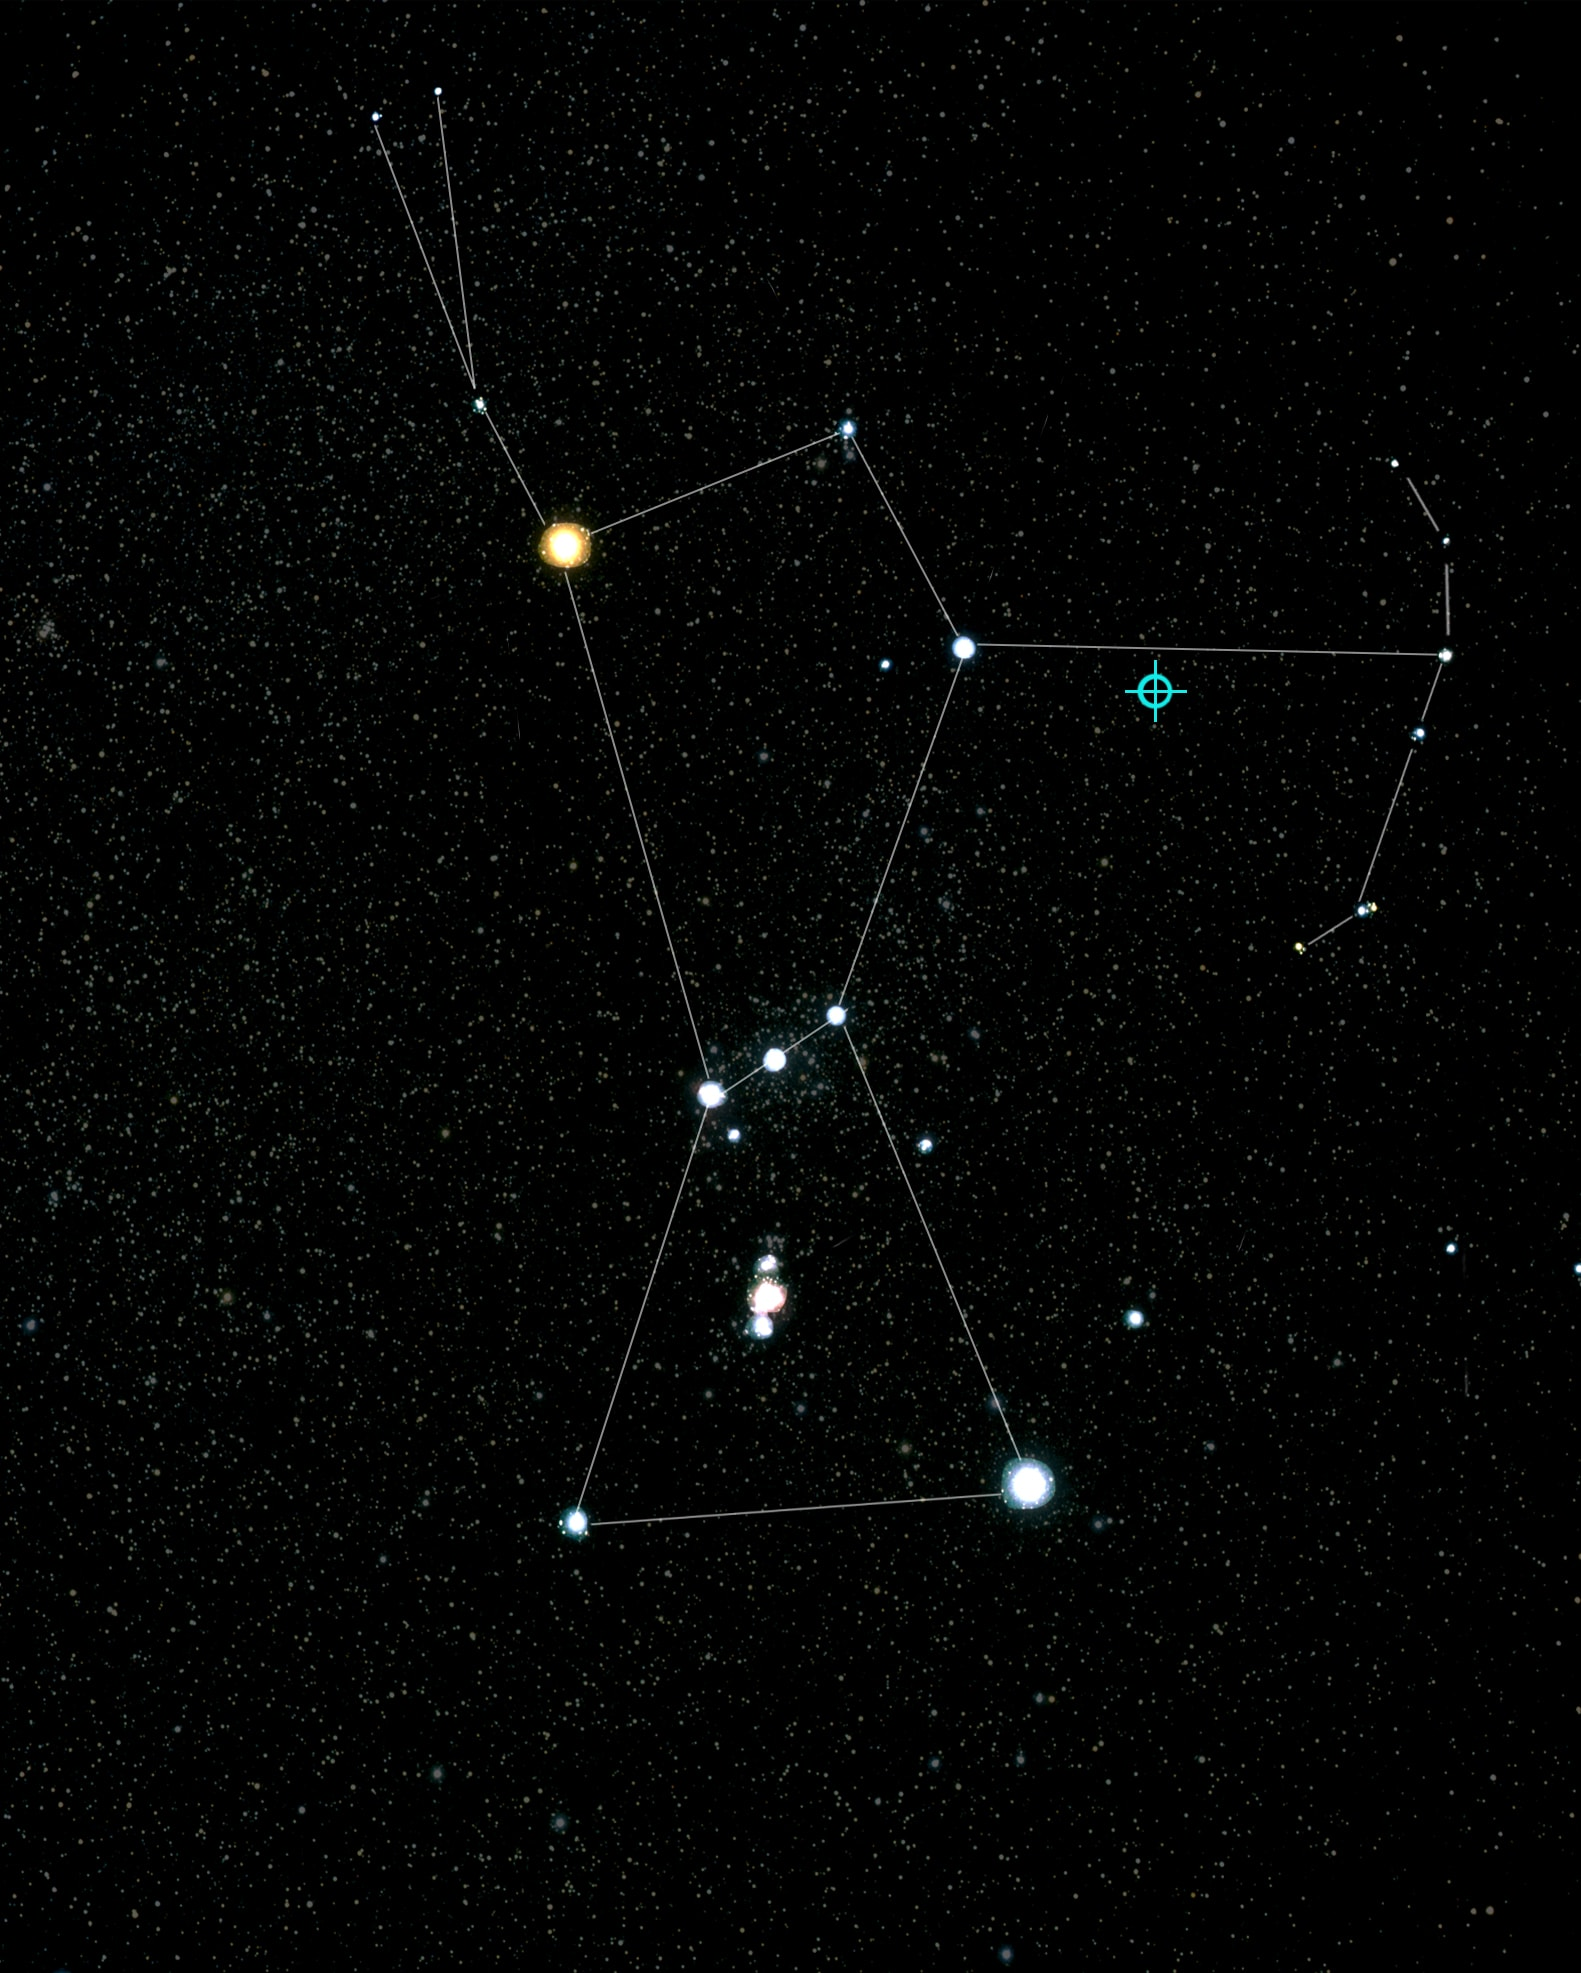 Blazar TXS 0506+056 and Orion in the sky